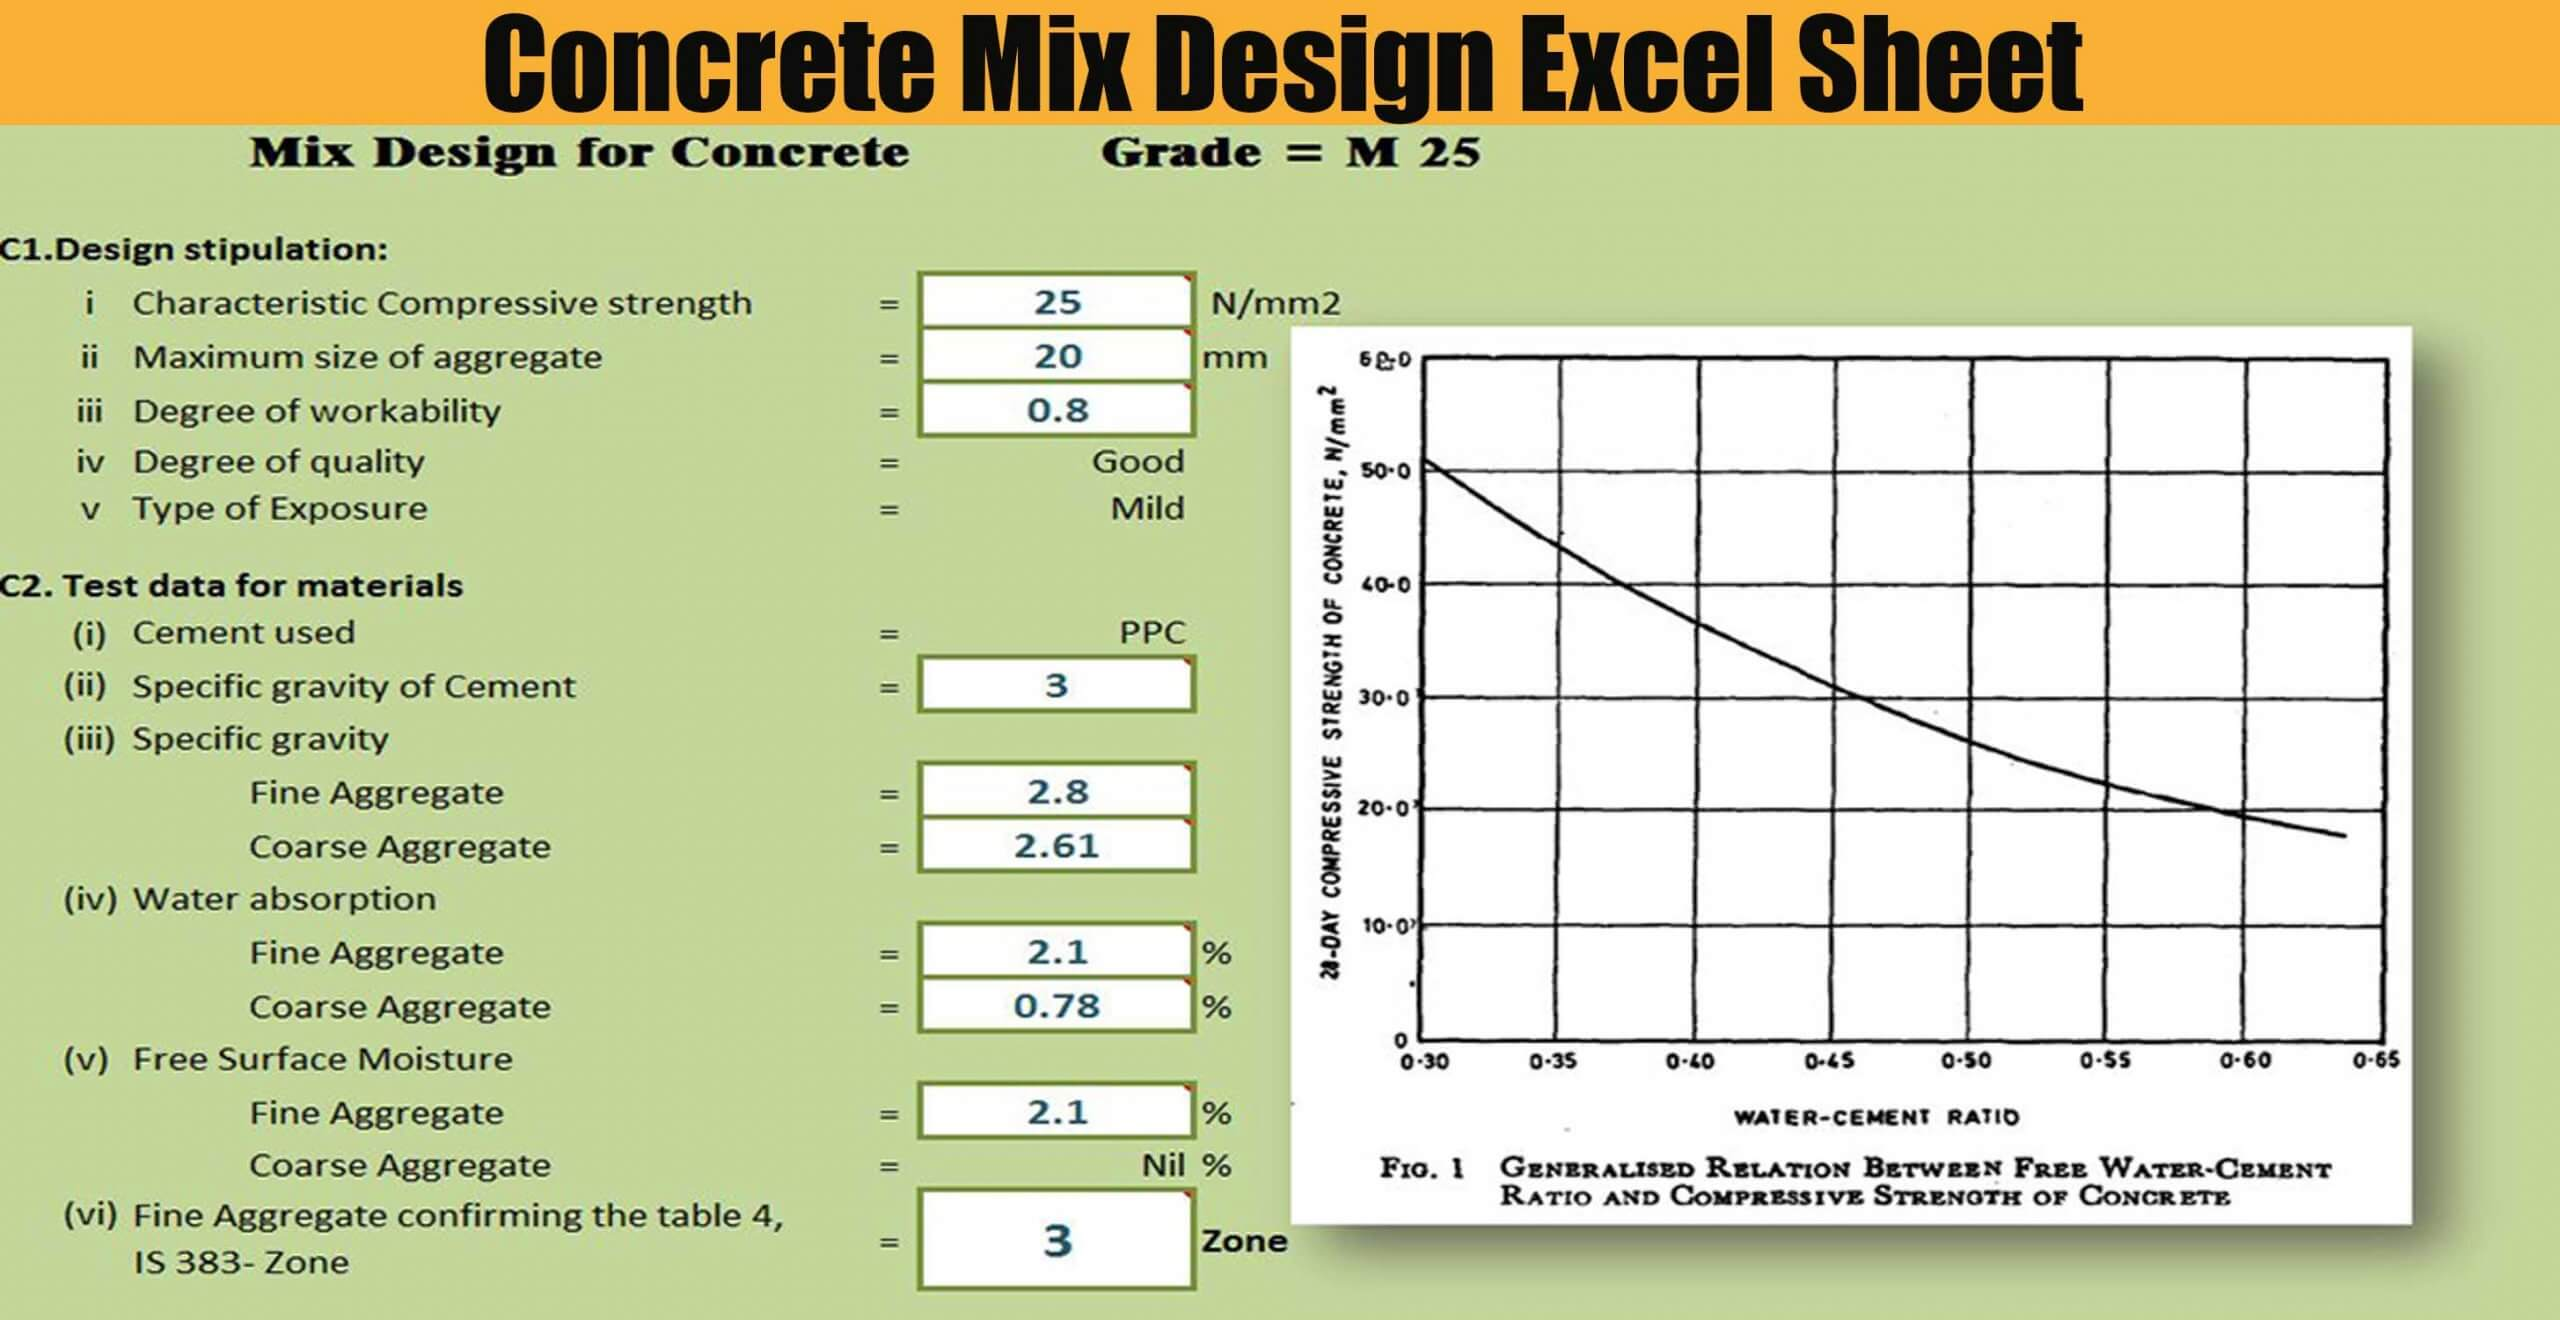 Concrete Mix Design Excel Sheet - Engineering Discoveries